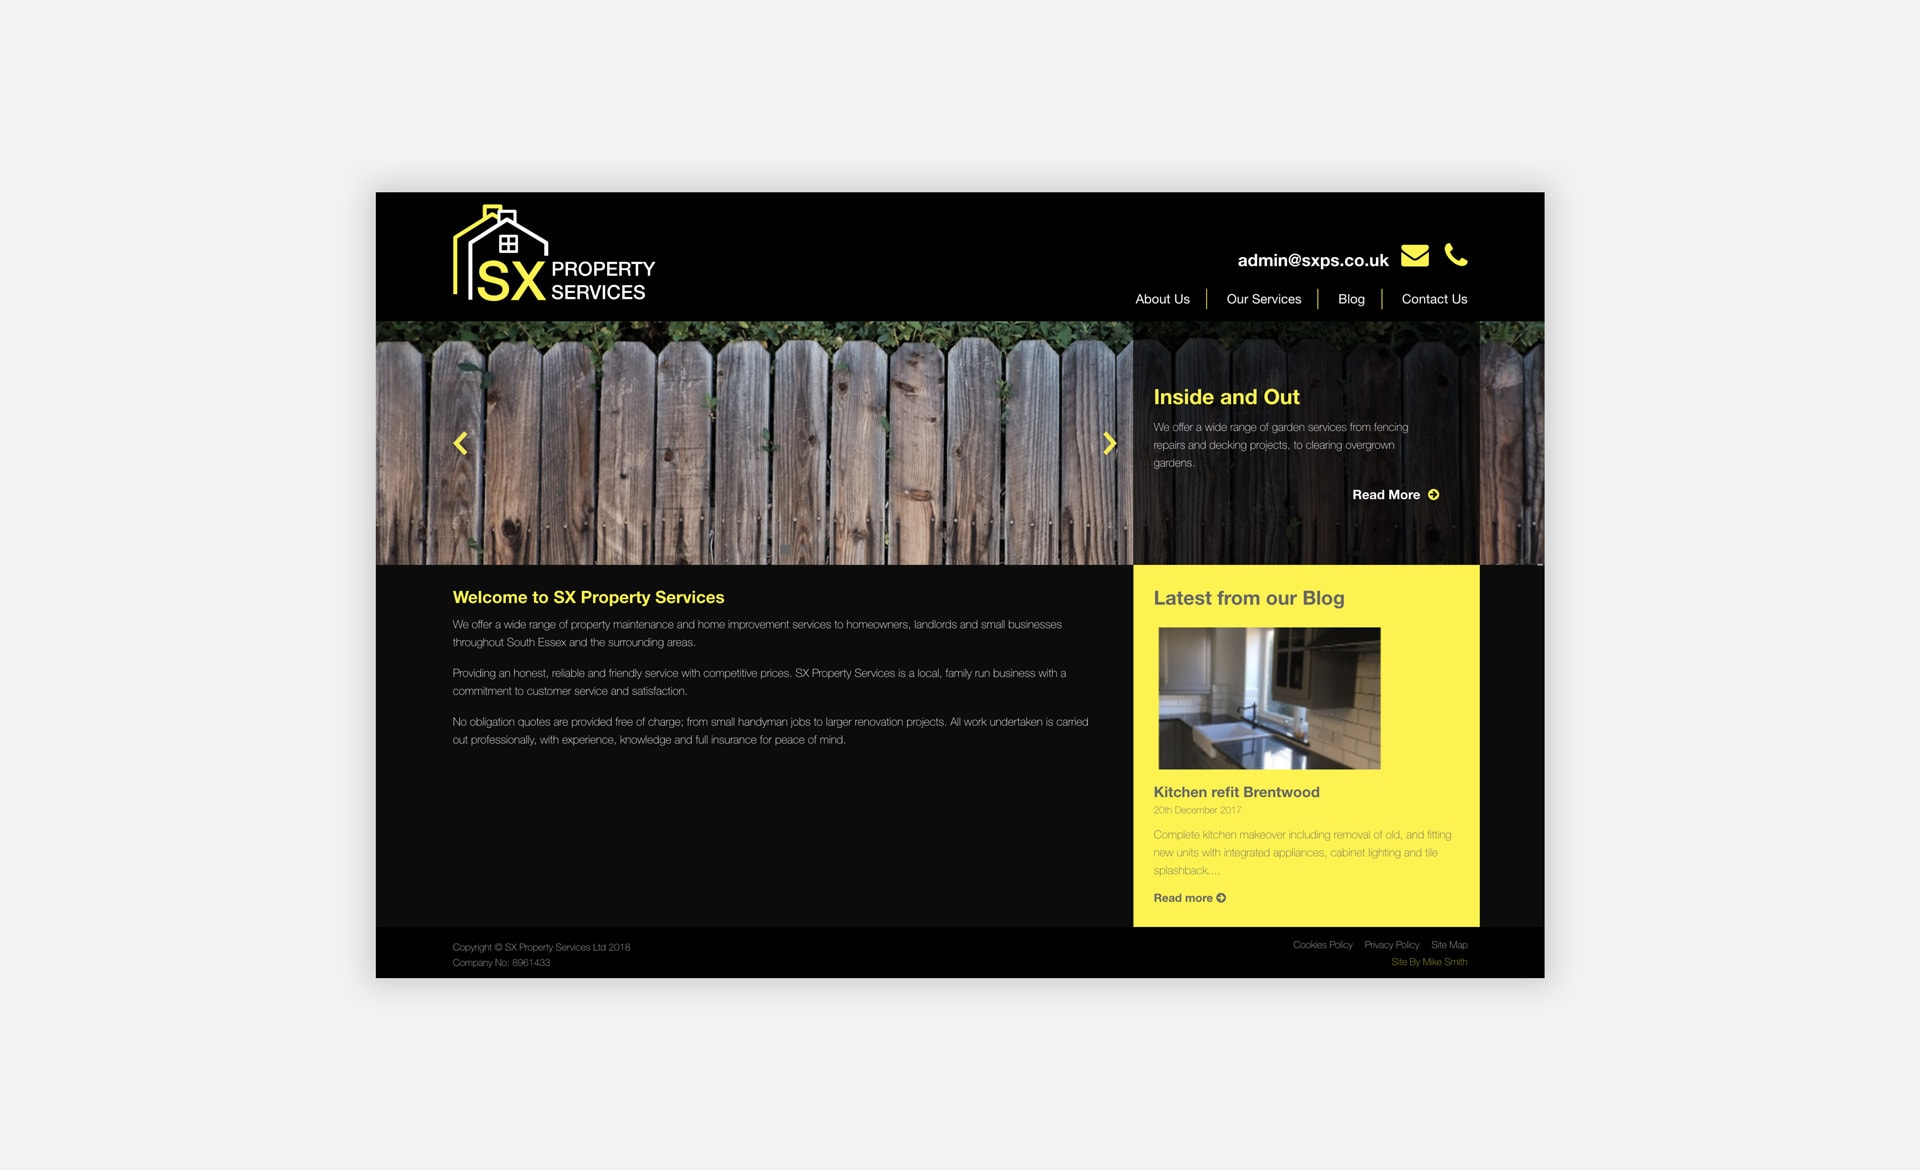 SX Property Services Home Page